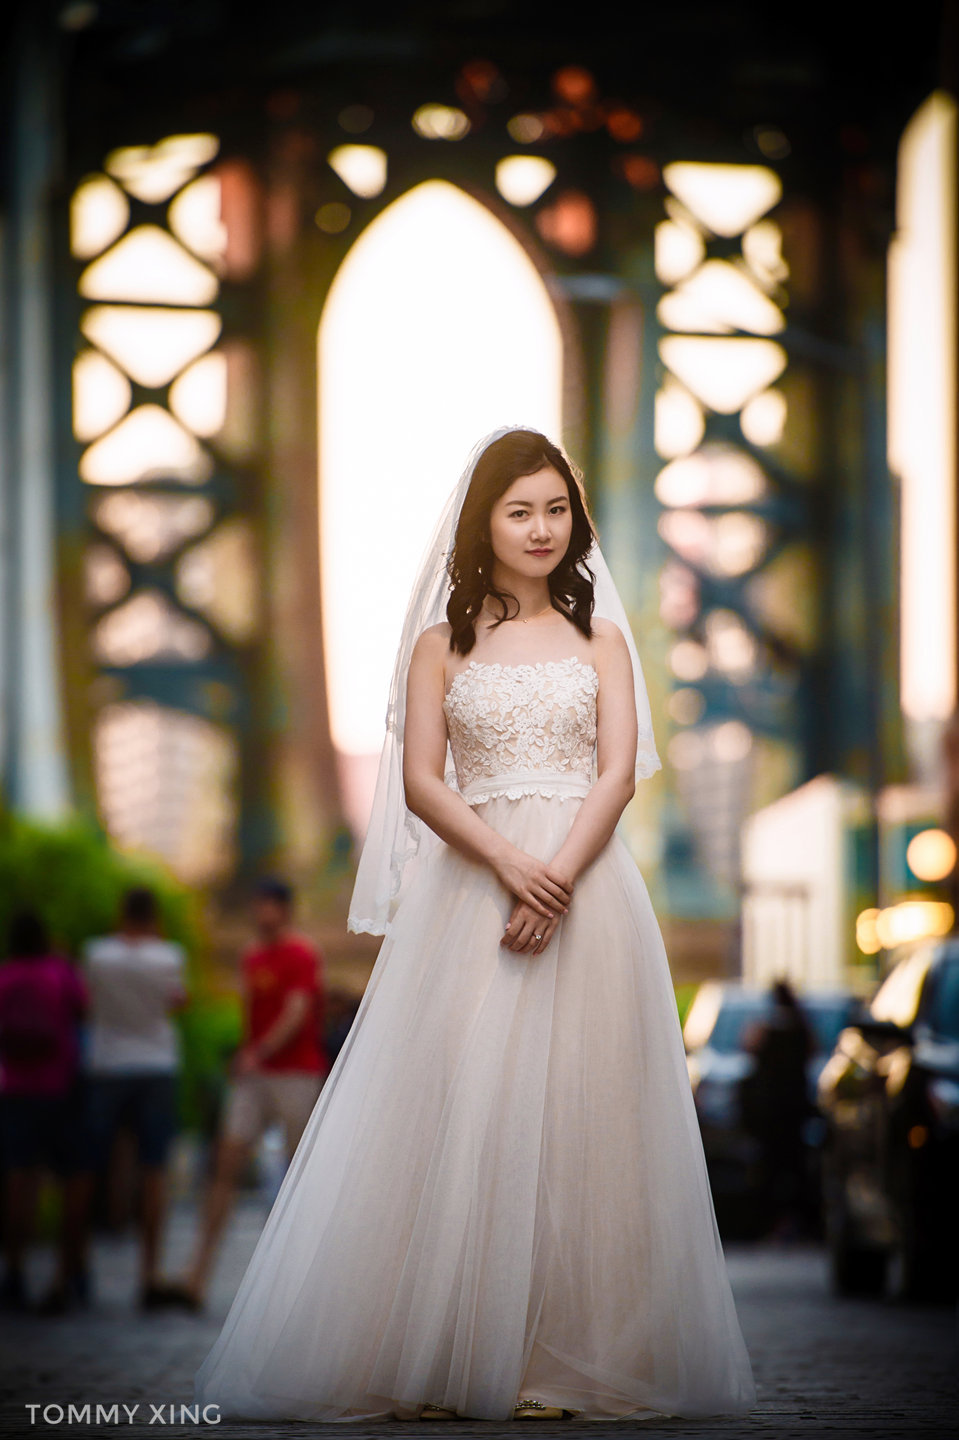 New York Pre Wedding Song & Ziyao by Tommy Xing Photography 纽约婚纱照摄影 34.jpg